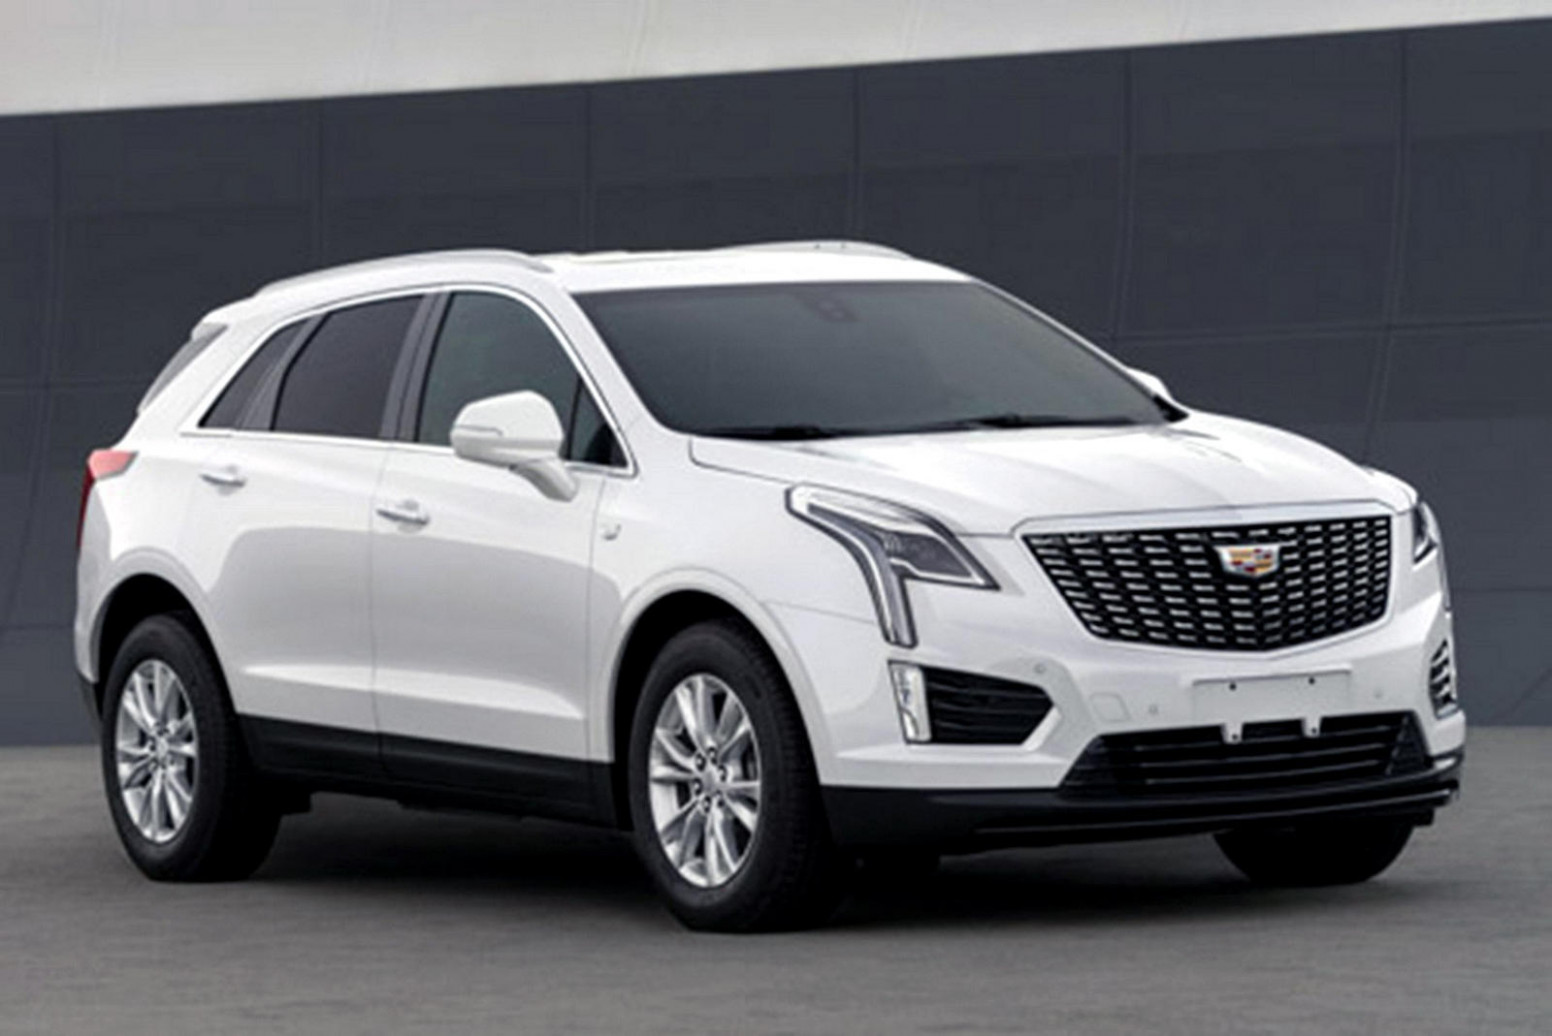 11 Cadillac XT11 Facelift Breaks Cover Early | CarBuzz - cadillac xt5 review 2020